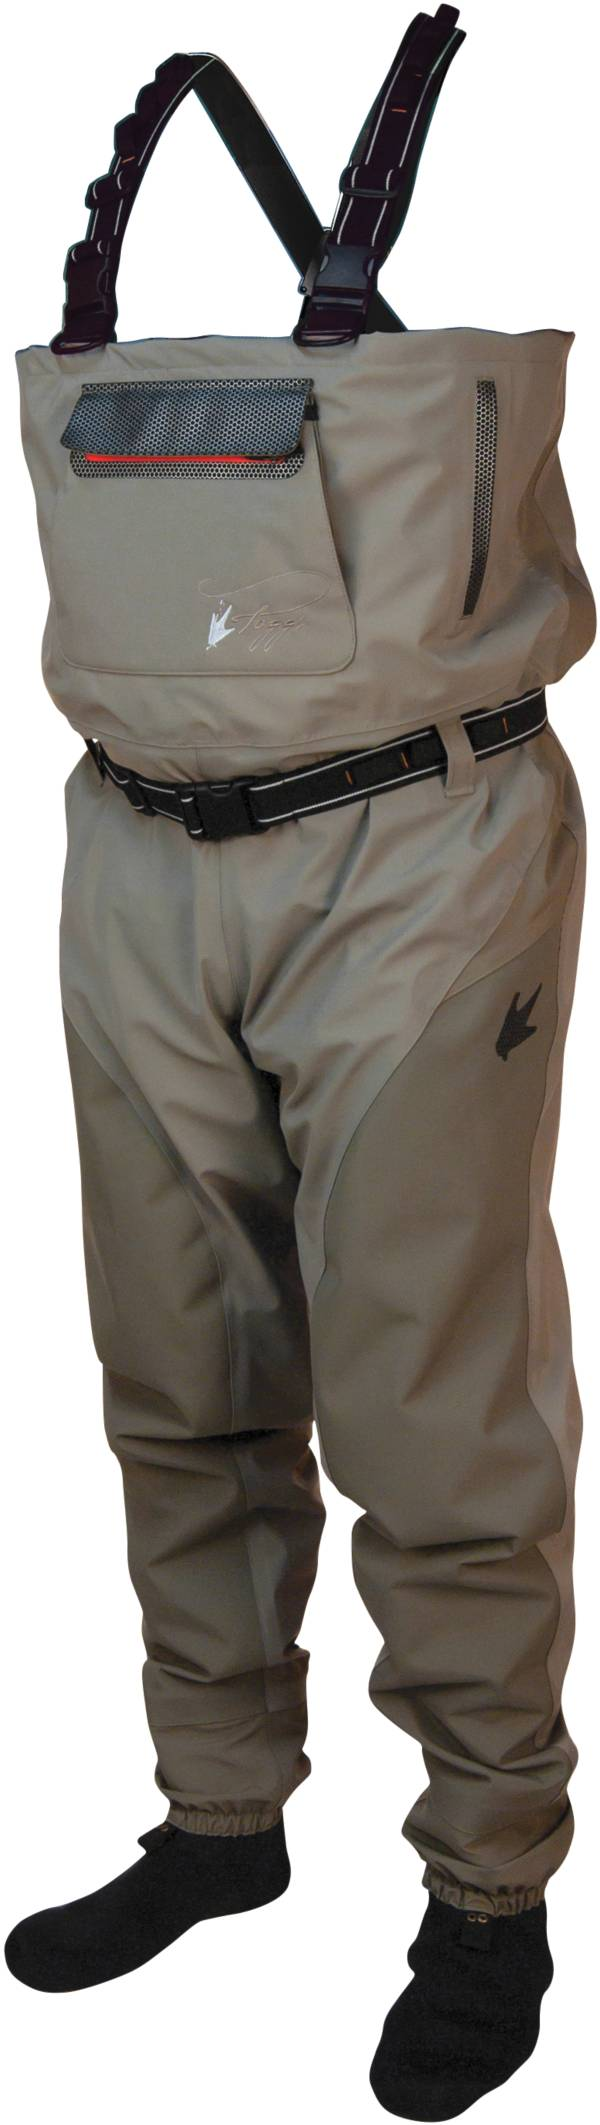 frogg toggs Anura II Breathable Chest Waders product image